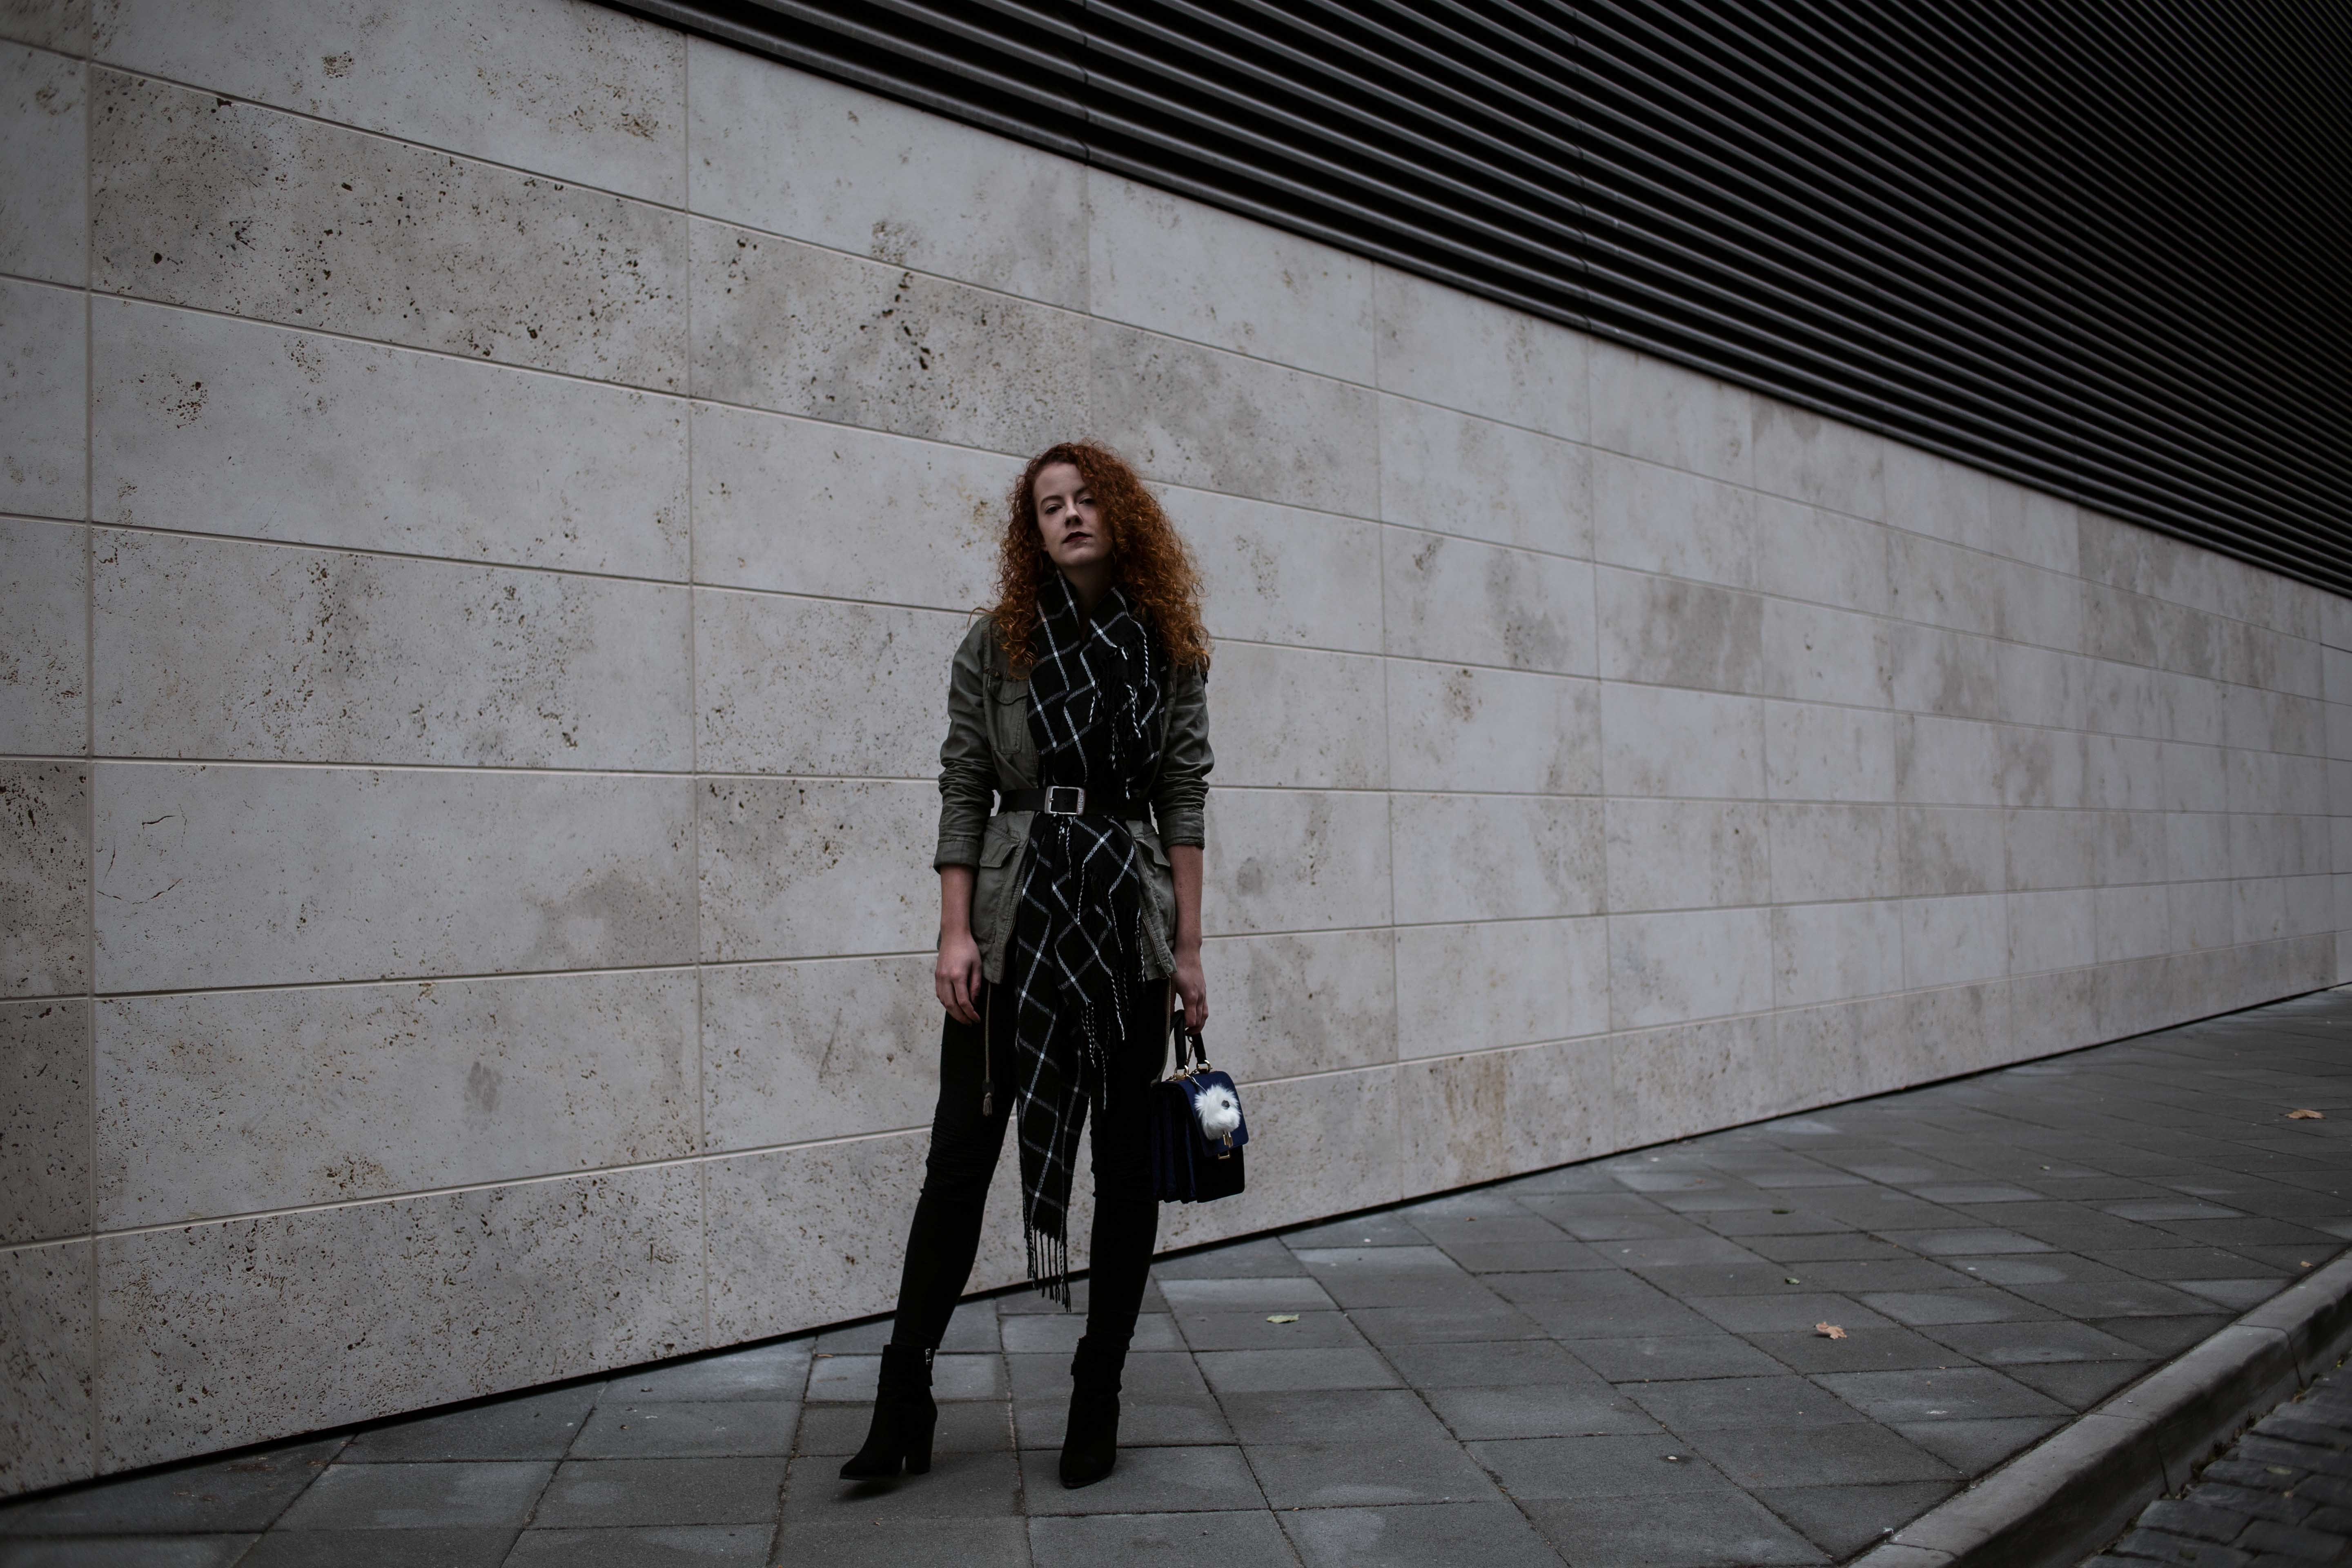 outfit fashionblogger mode blogger fashion blogger frankfurt berlin schal gürtel scarf belt streetstyle street style blogger fashion week curly hair red hair karierter schal asos military jacket olivgrün zara bag tasche samt edited boot the curled girl edgy